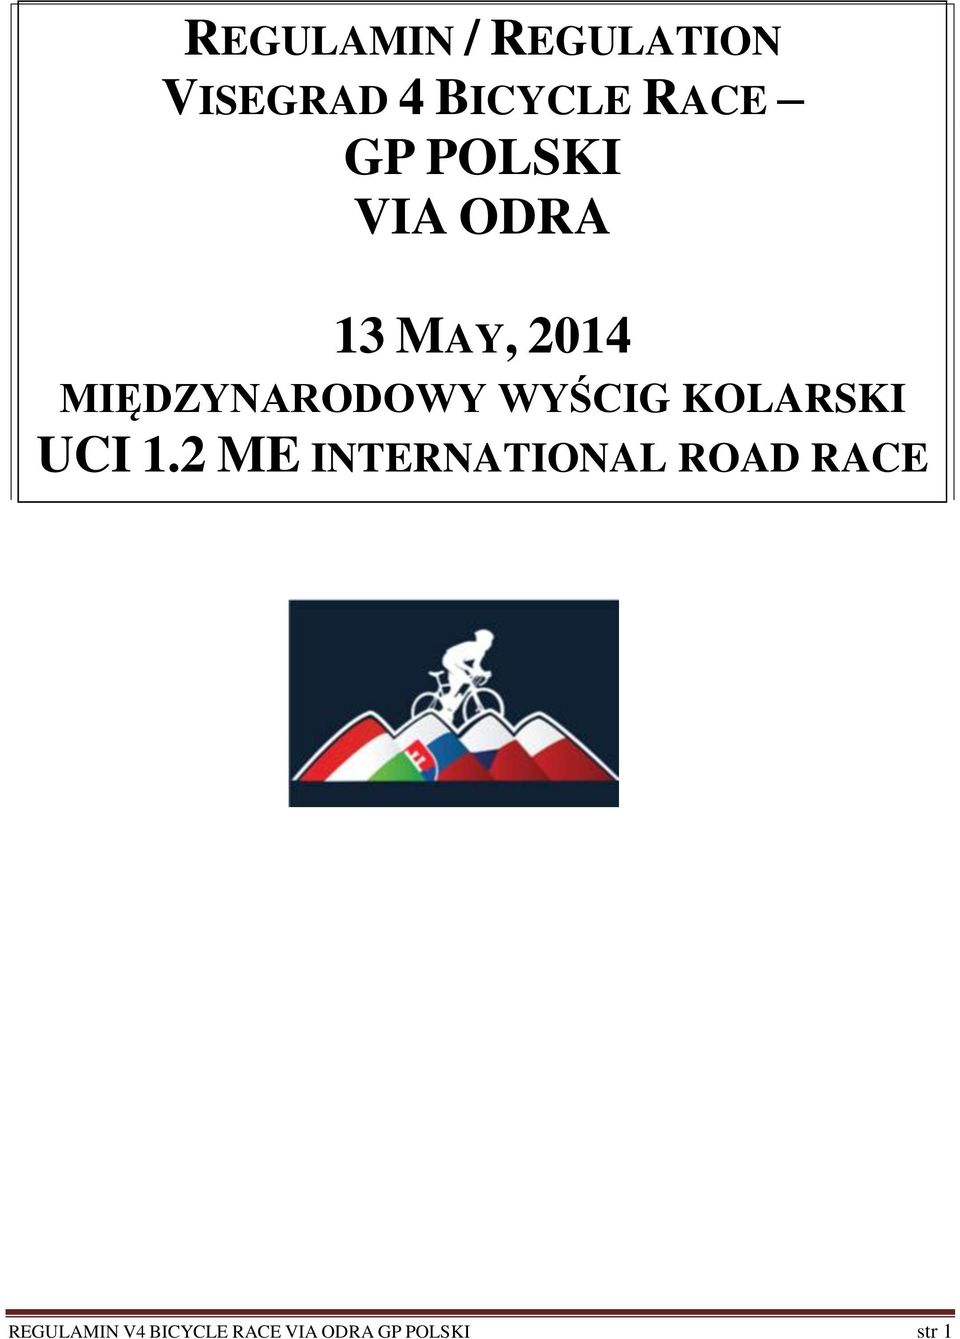 KOLARSKI UCI 1.2 ME INTERNATIONAL ROAD RACE CI 1.